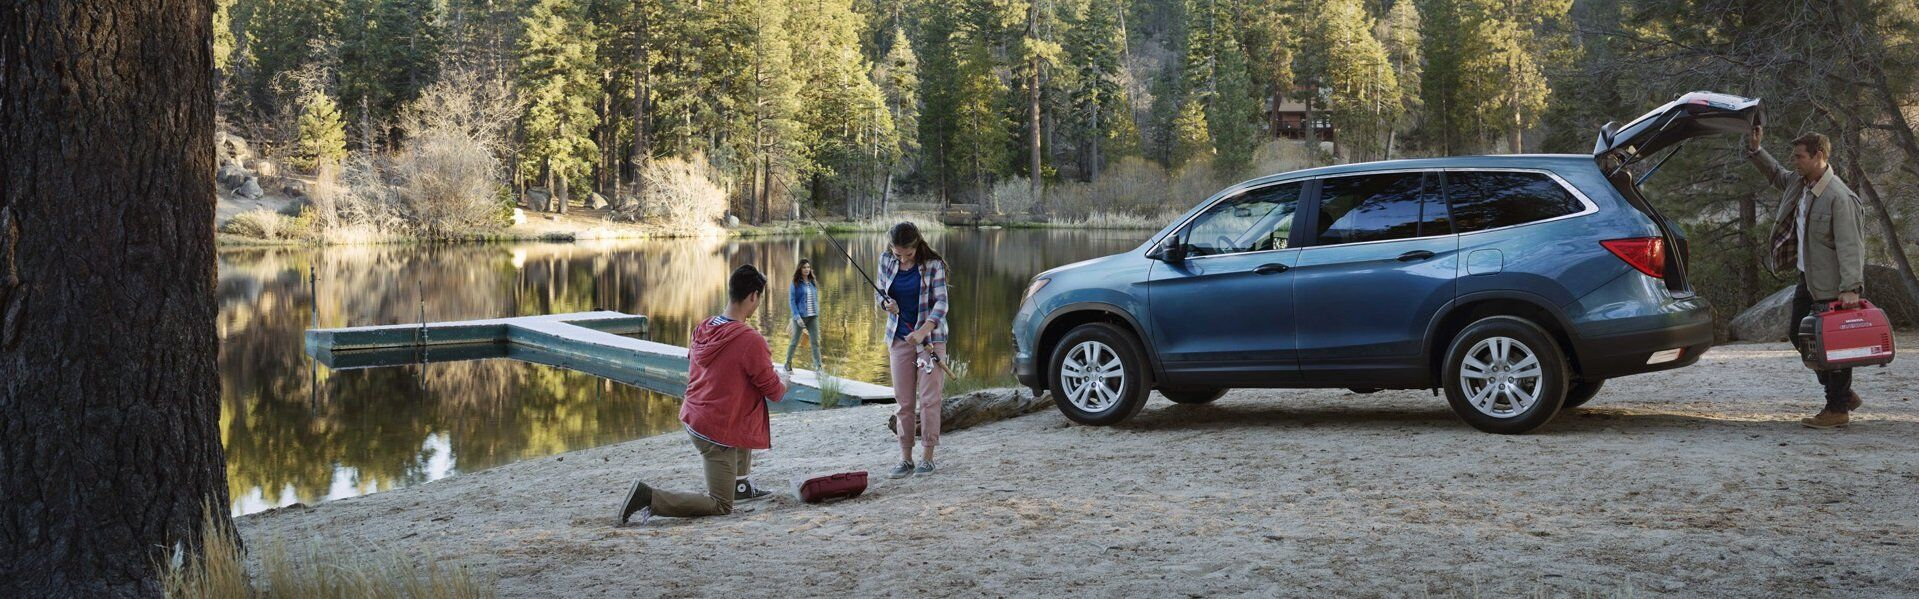 2017 honda pilot and jim sigel honda grants pass